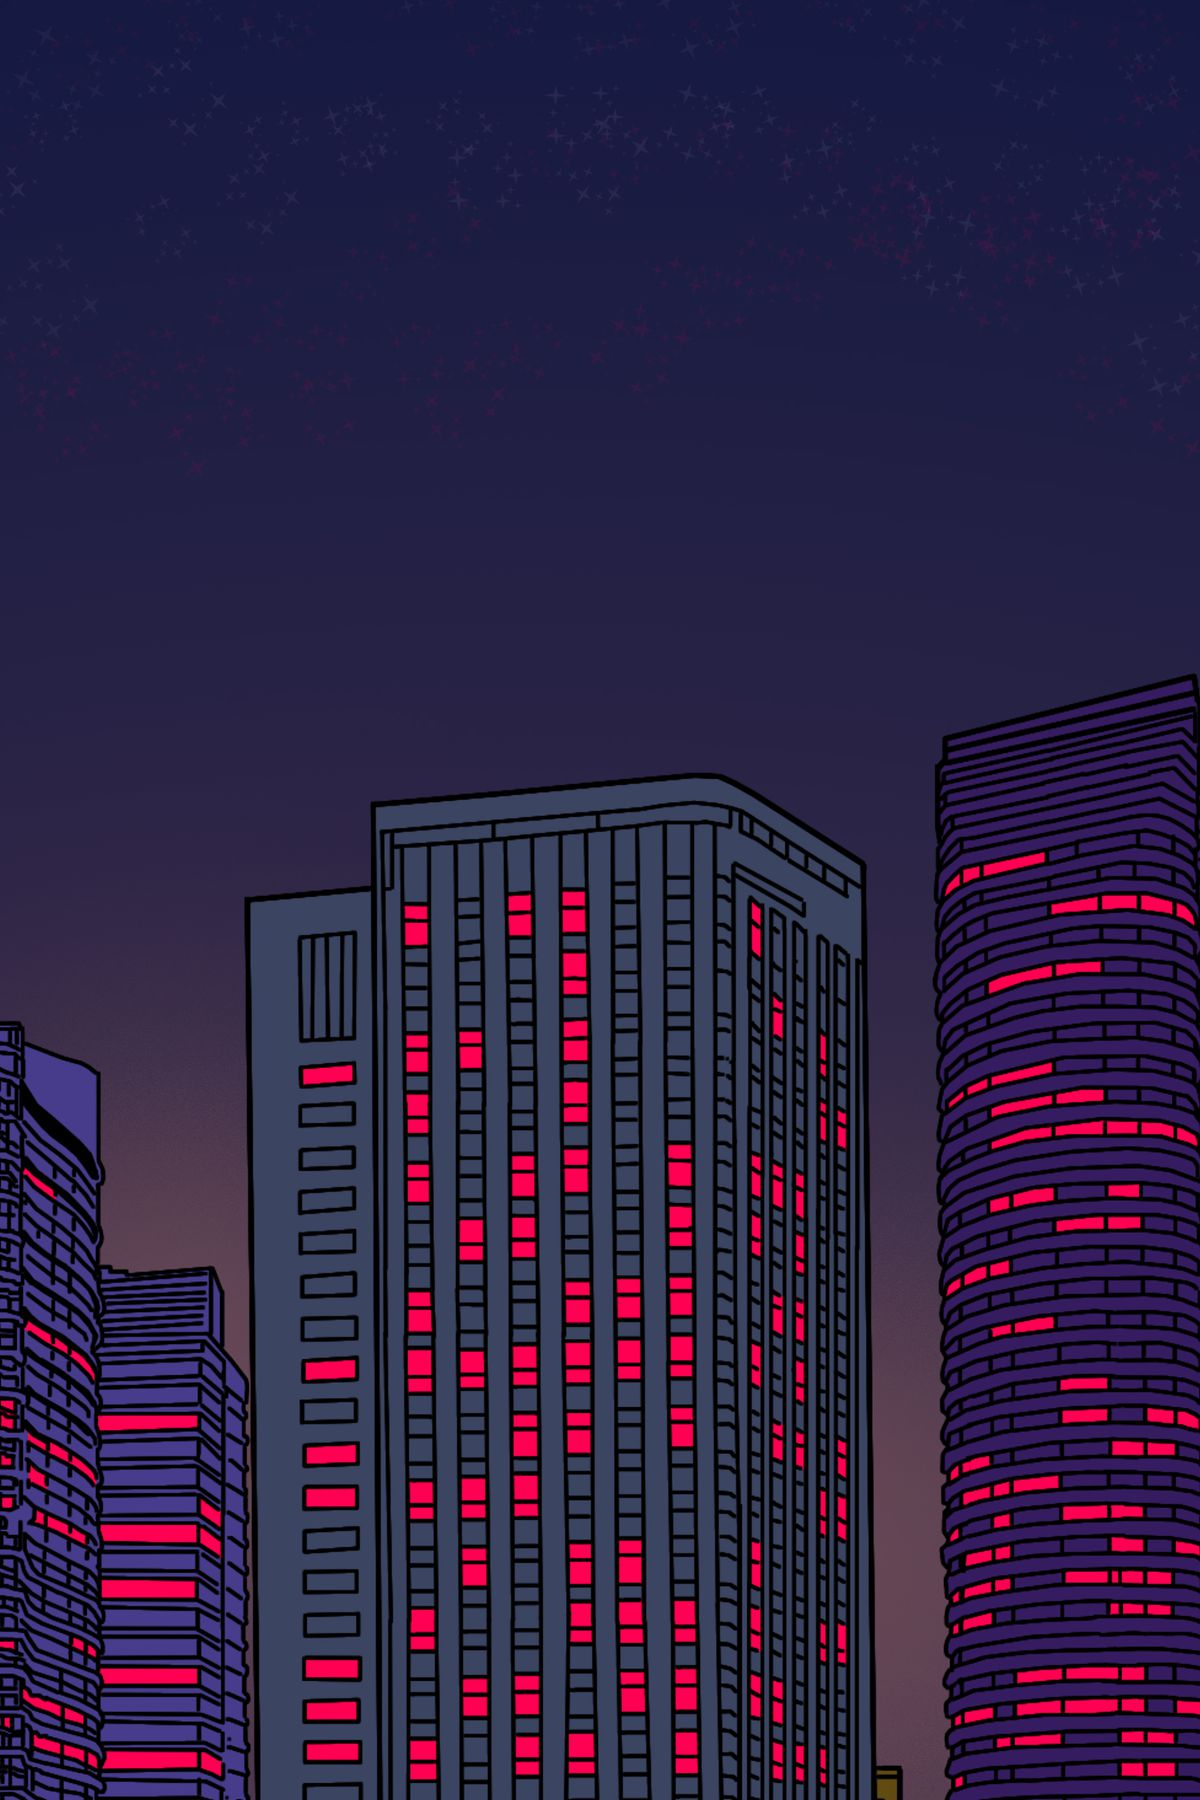 The image of the city zooms in further on rows and rows of windows, each one lit up with the same pink light.